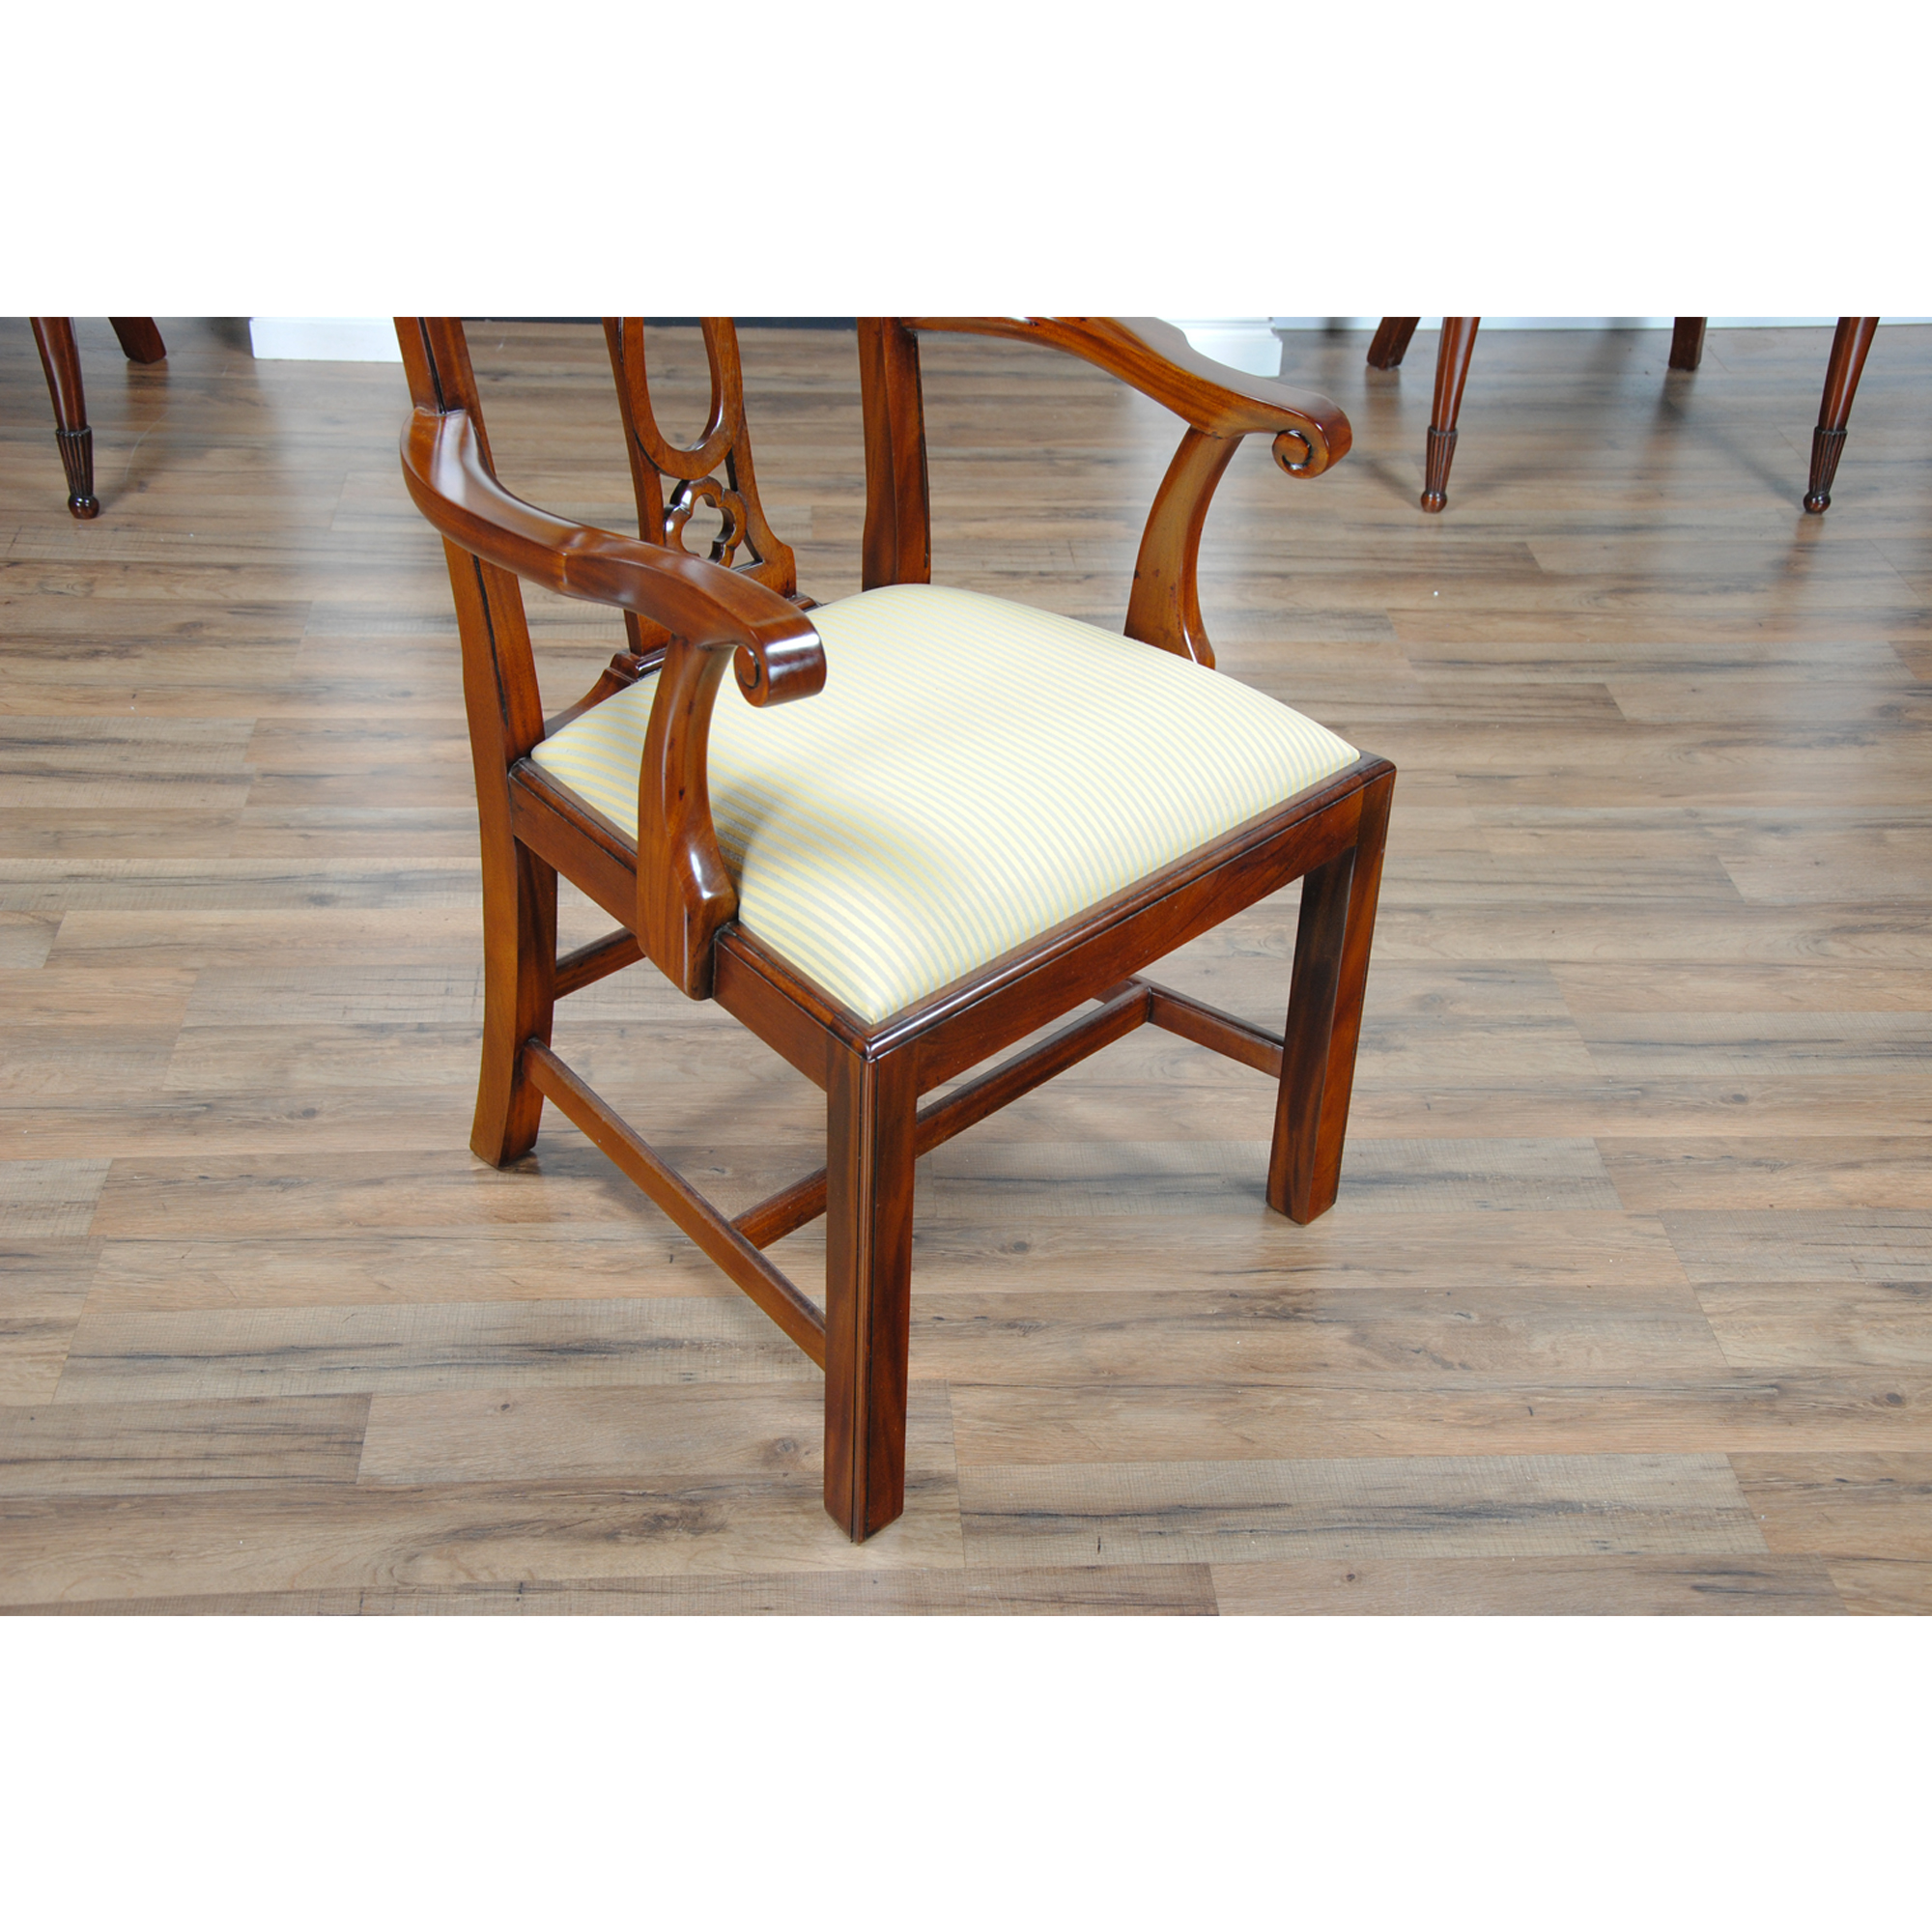 Ashley Furniture Slc: Country Chippendale Arm Chair, Niagara Furniture, Solid